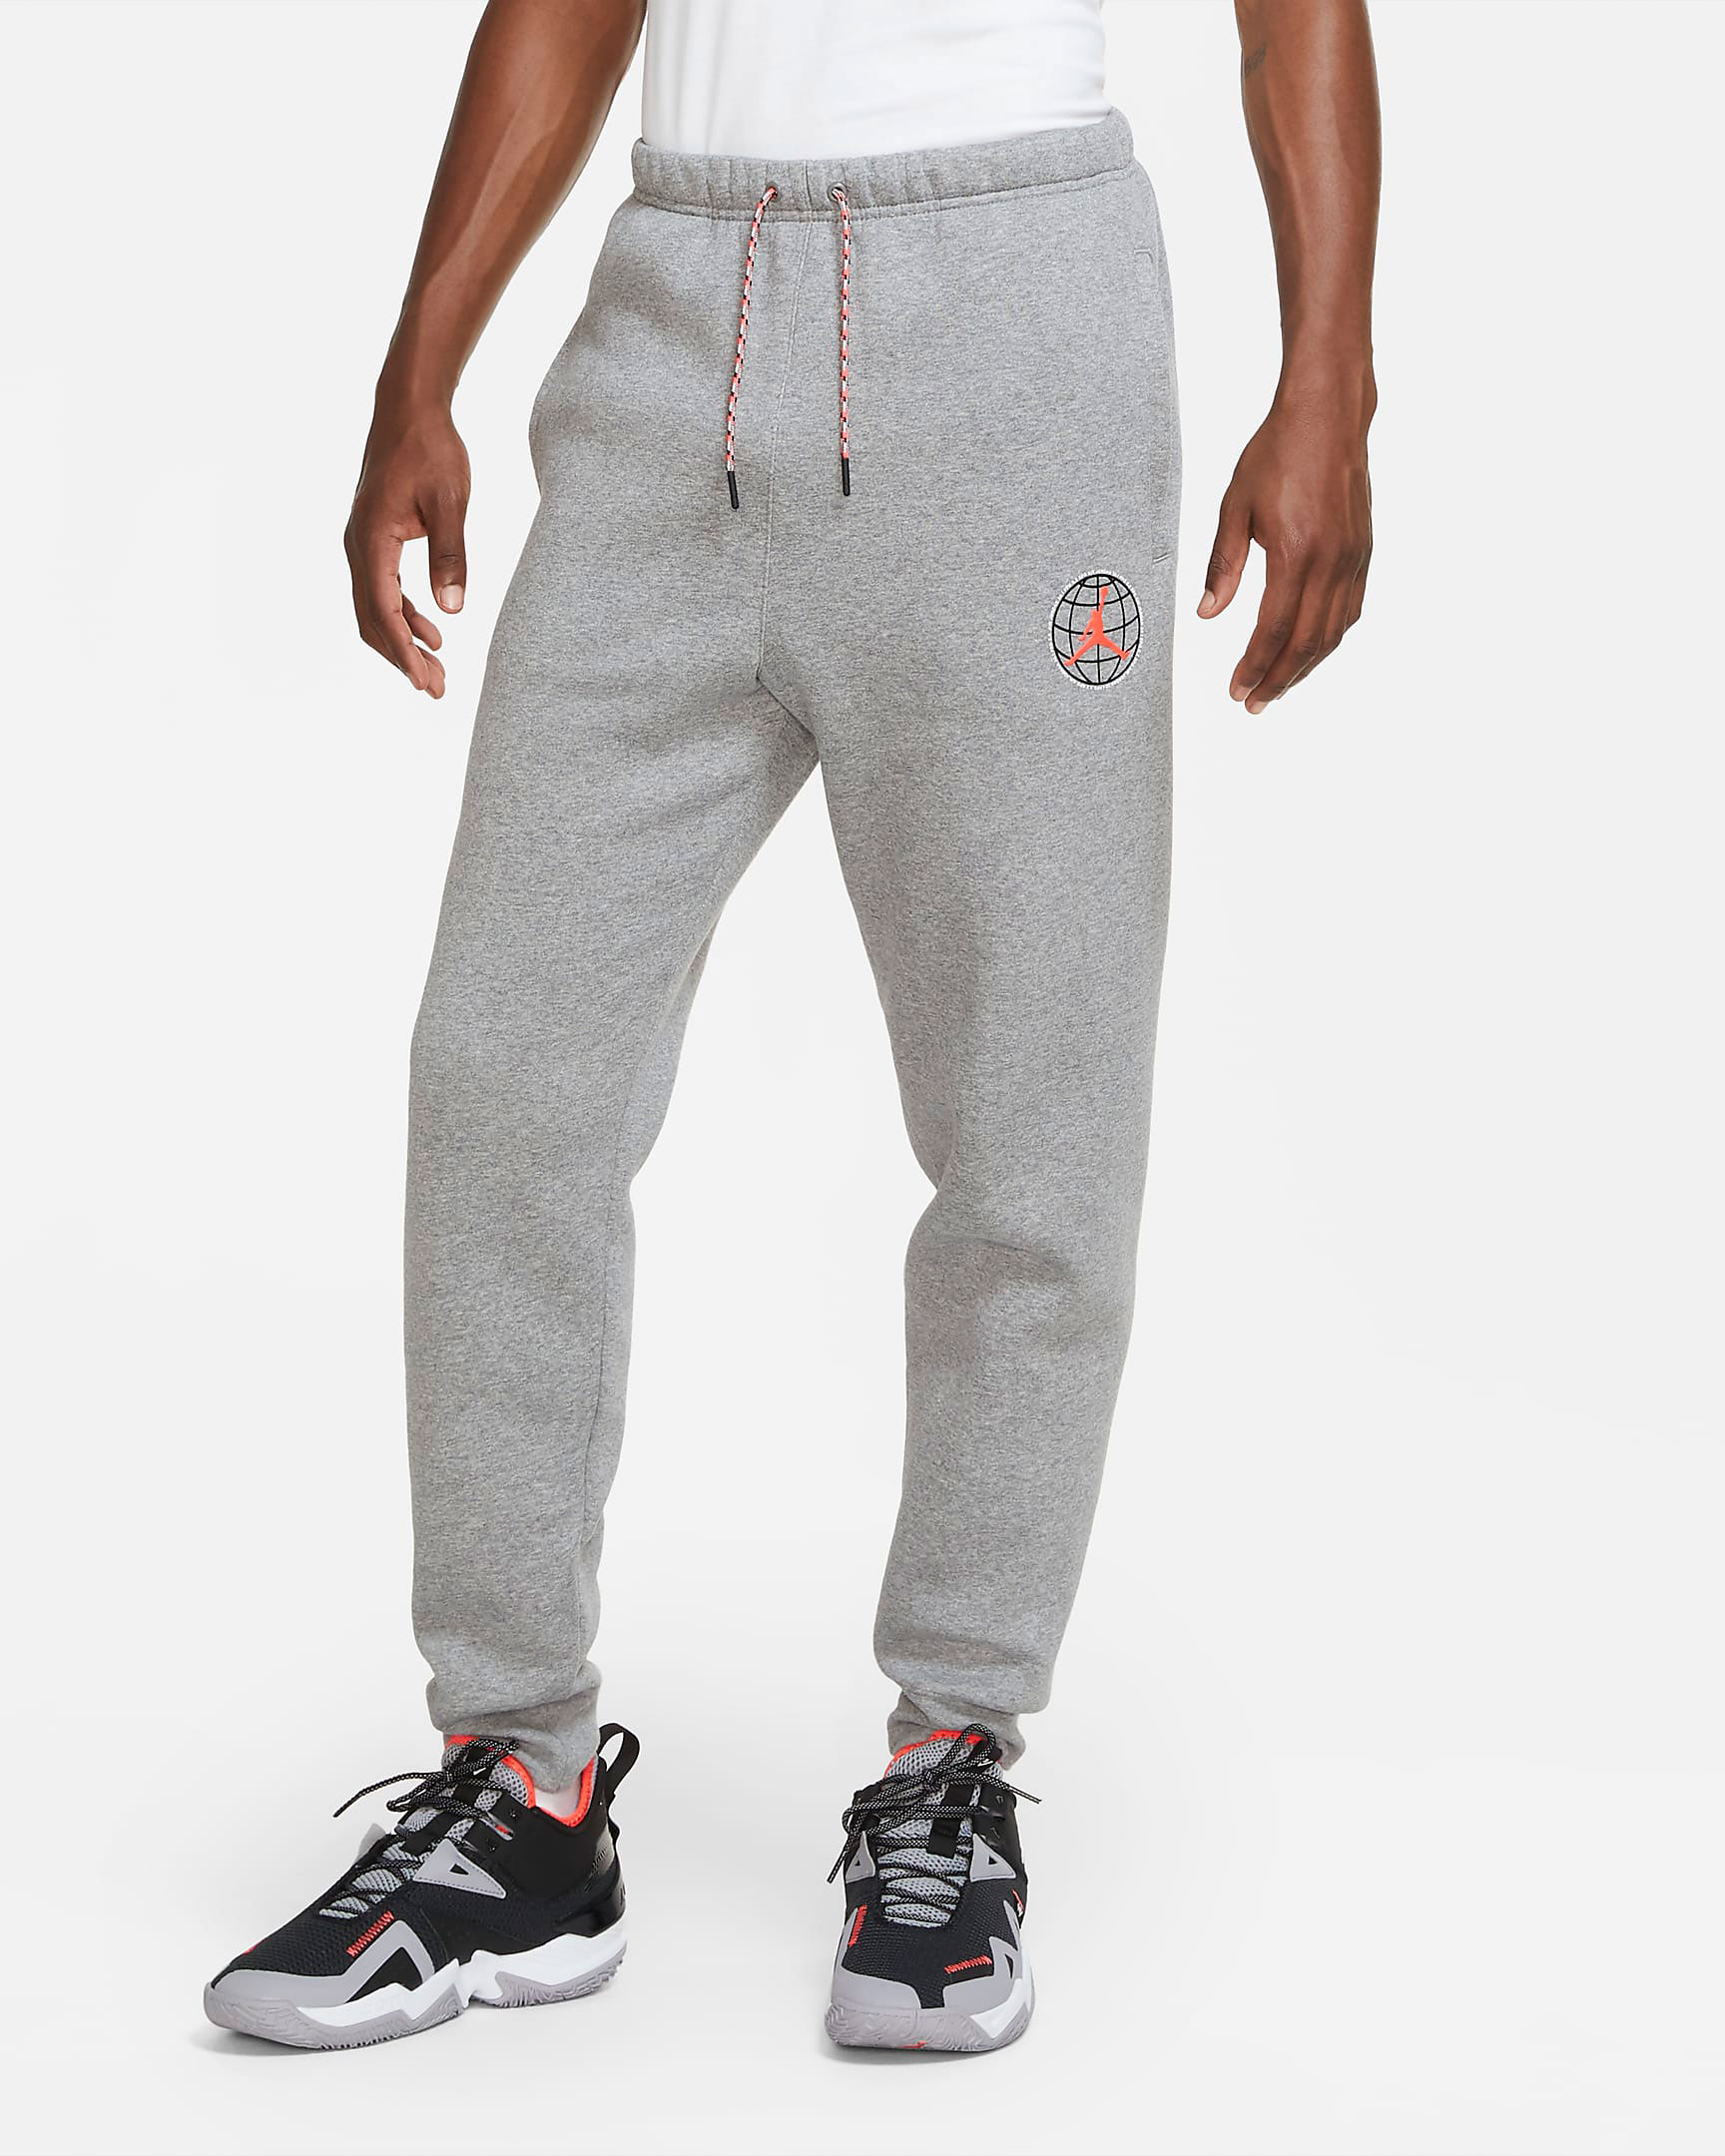 jordan-winter-utility-pants-grey-infrared-1